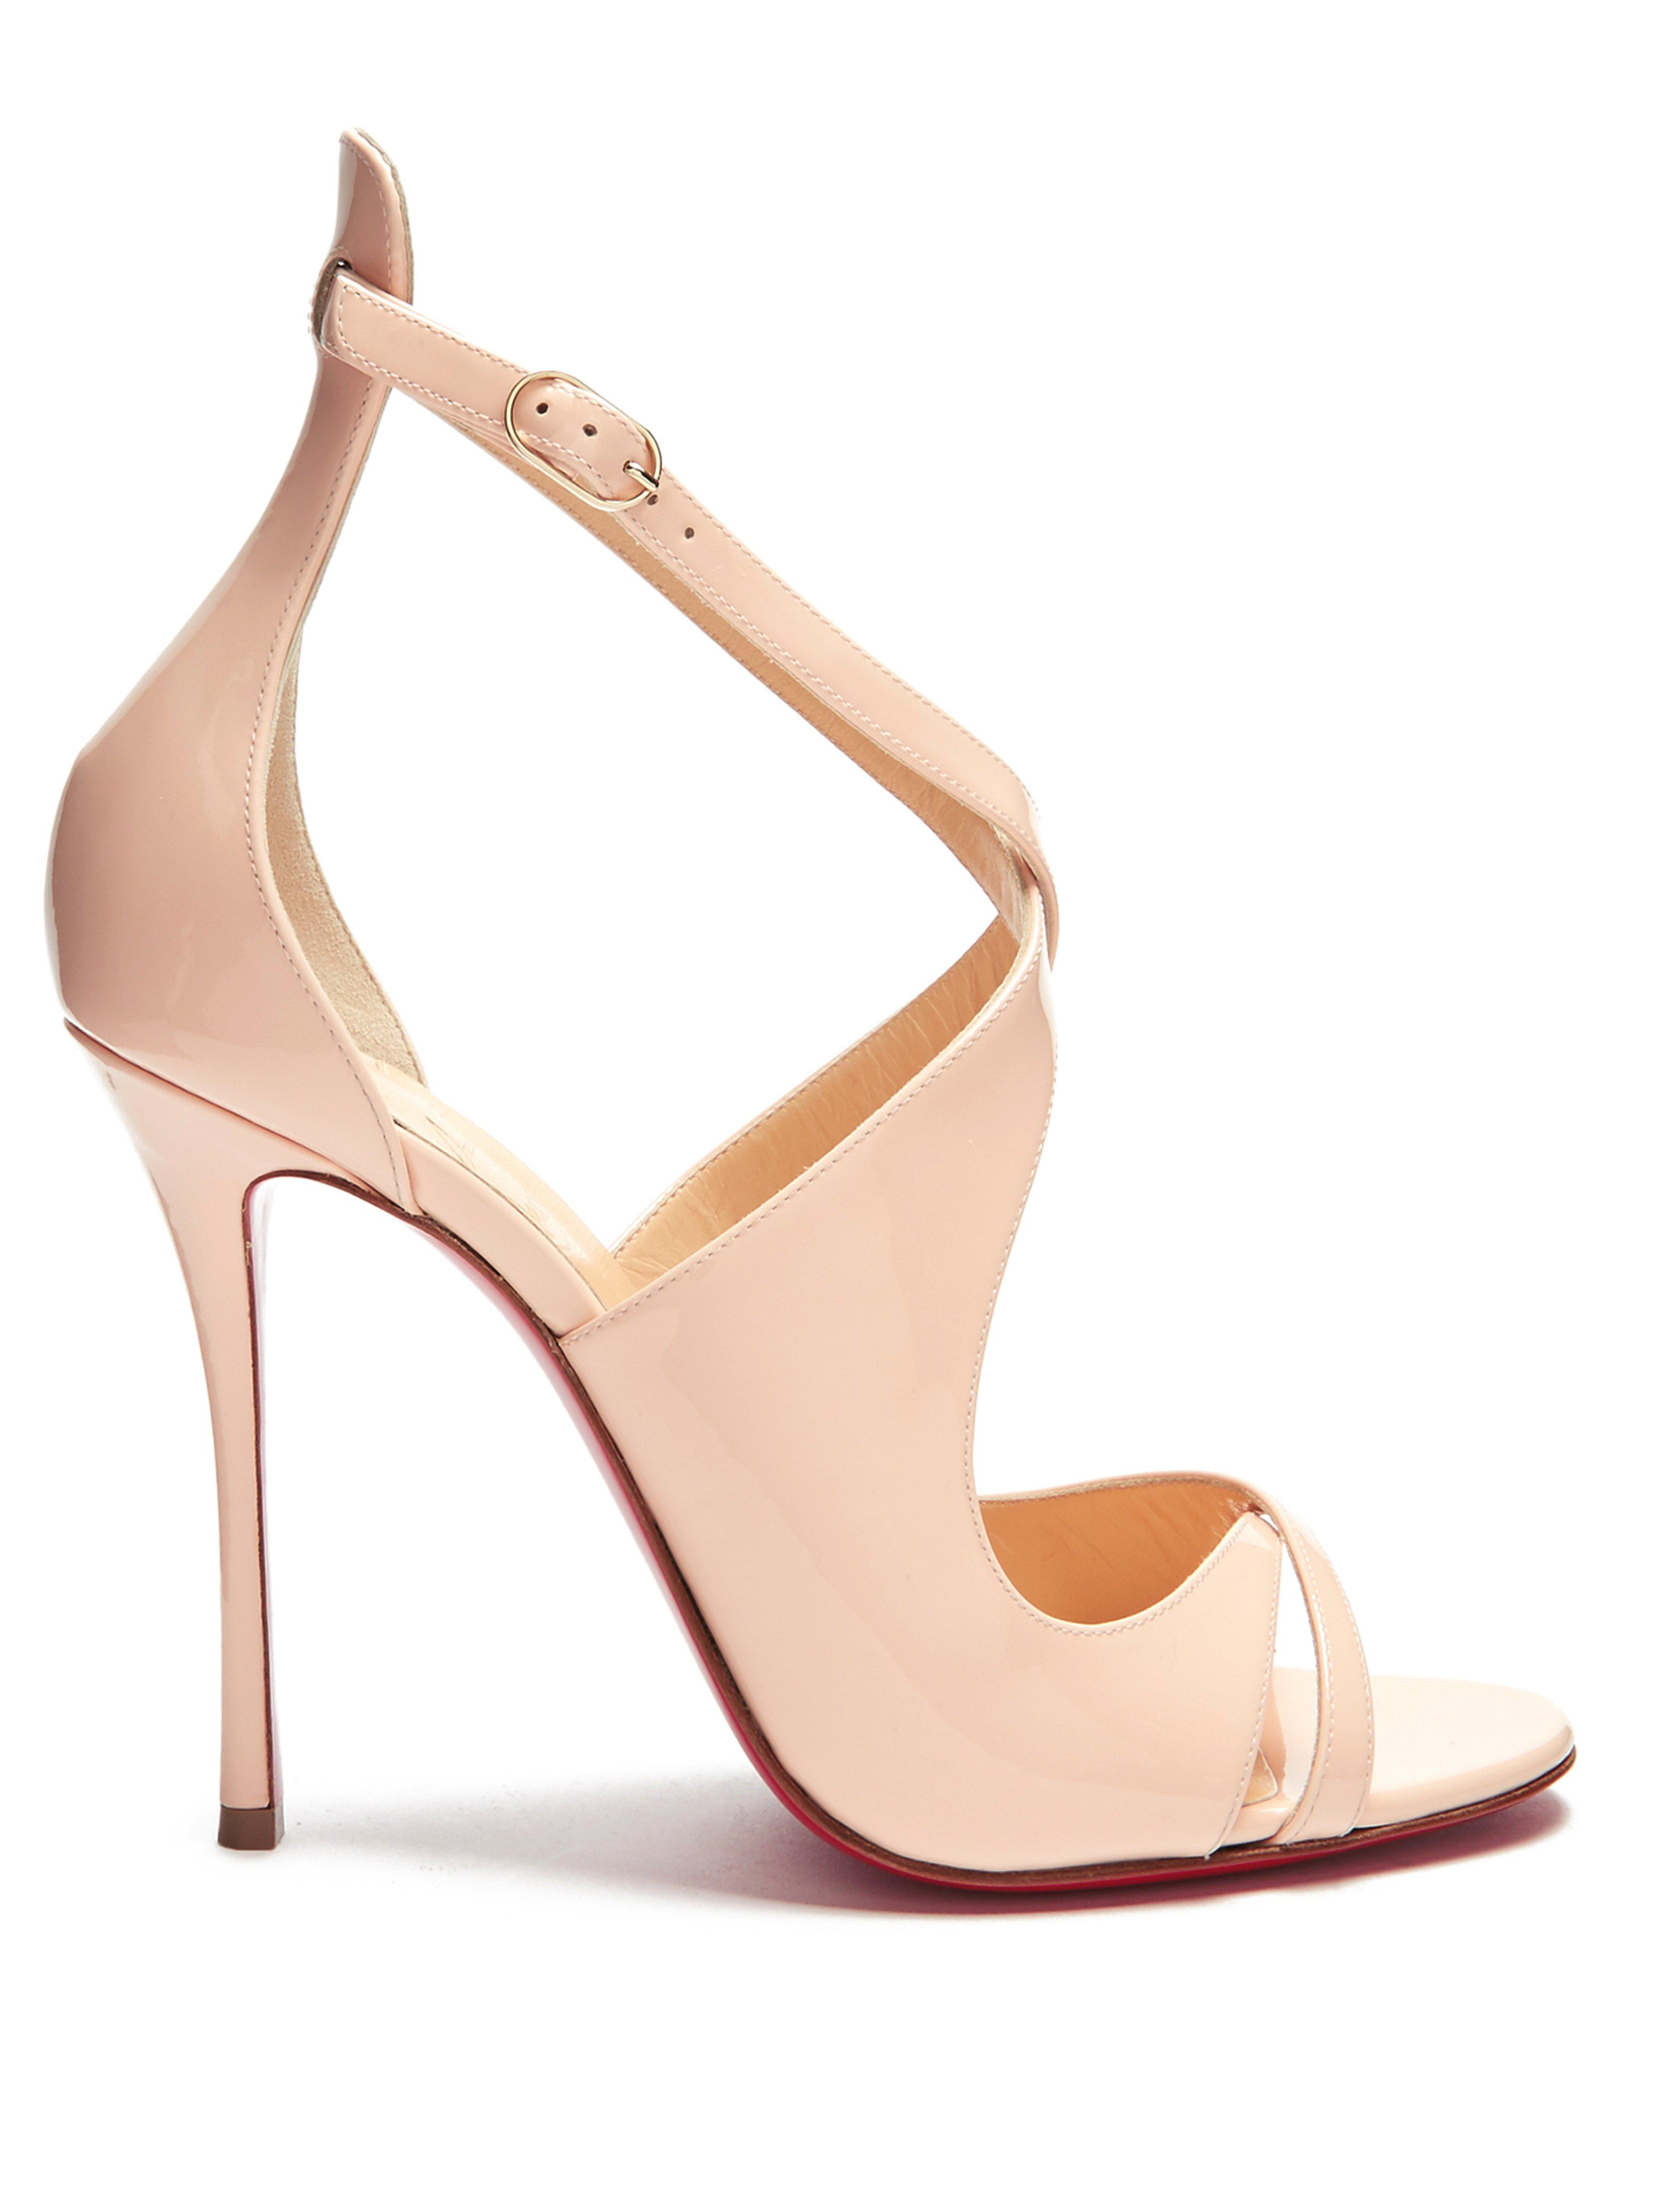 5271c16af8e Christian Louboutin. Women s Malefissima 100mm Patent-leather Court Shoes